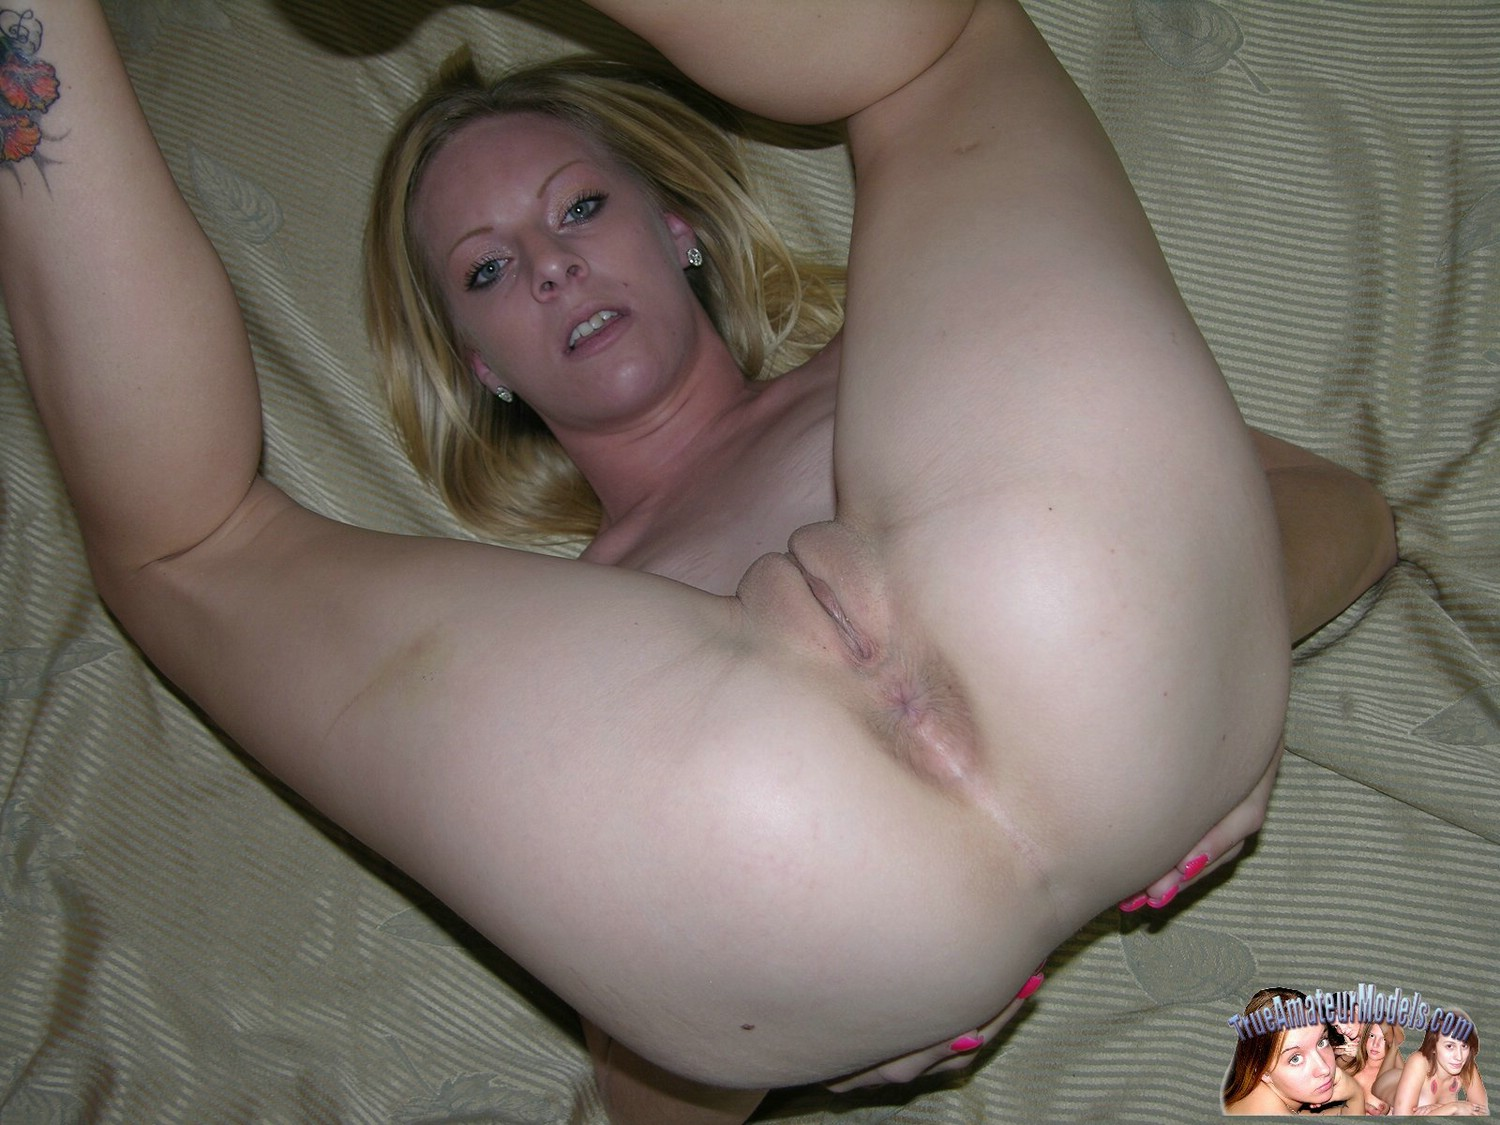 women naked dildo fun